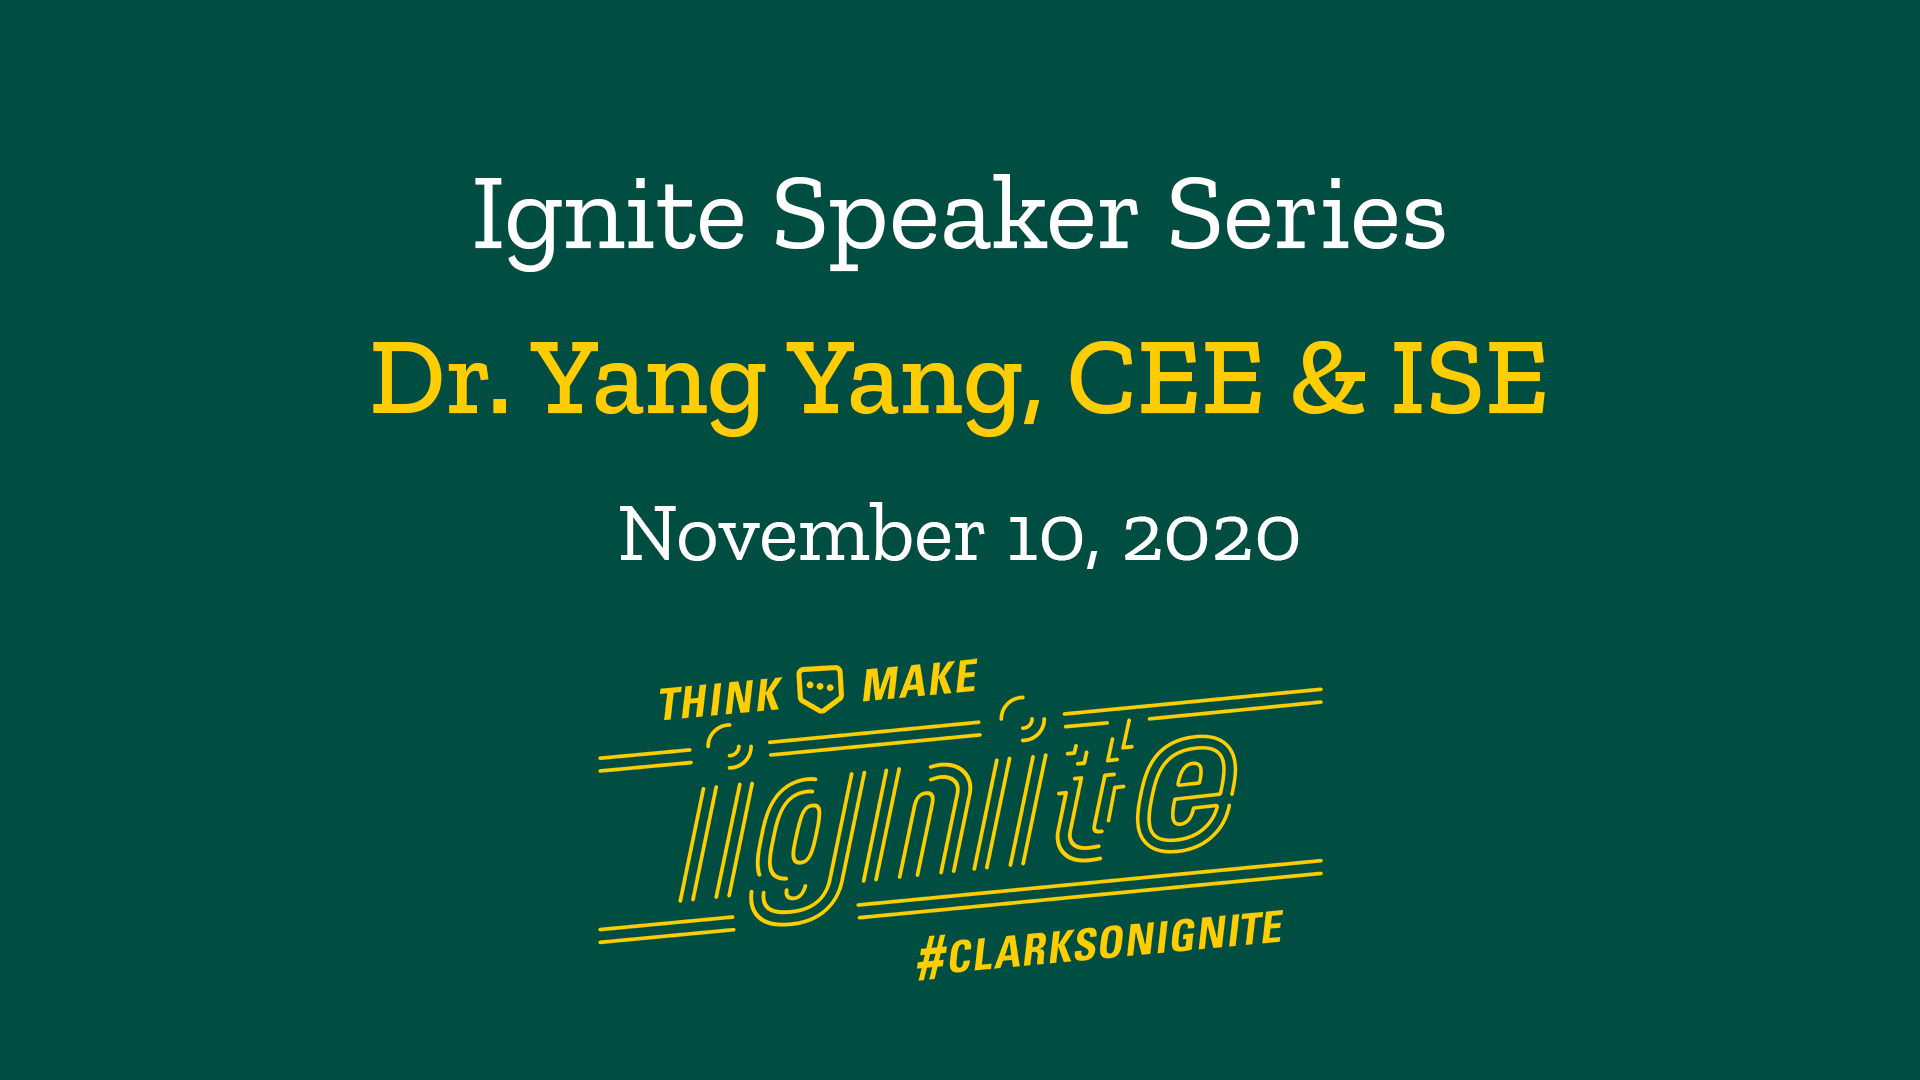 Ignite Speaker Series – November 10, 2020 2 PM